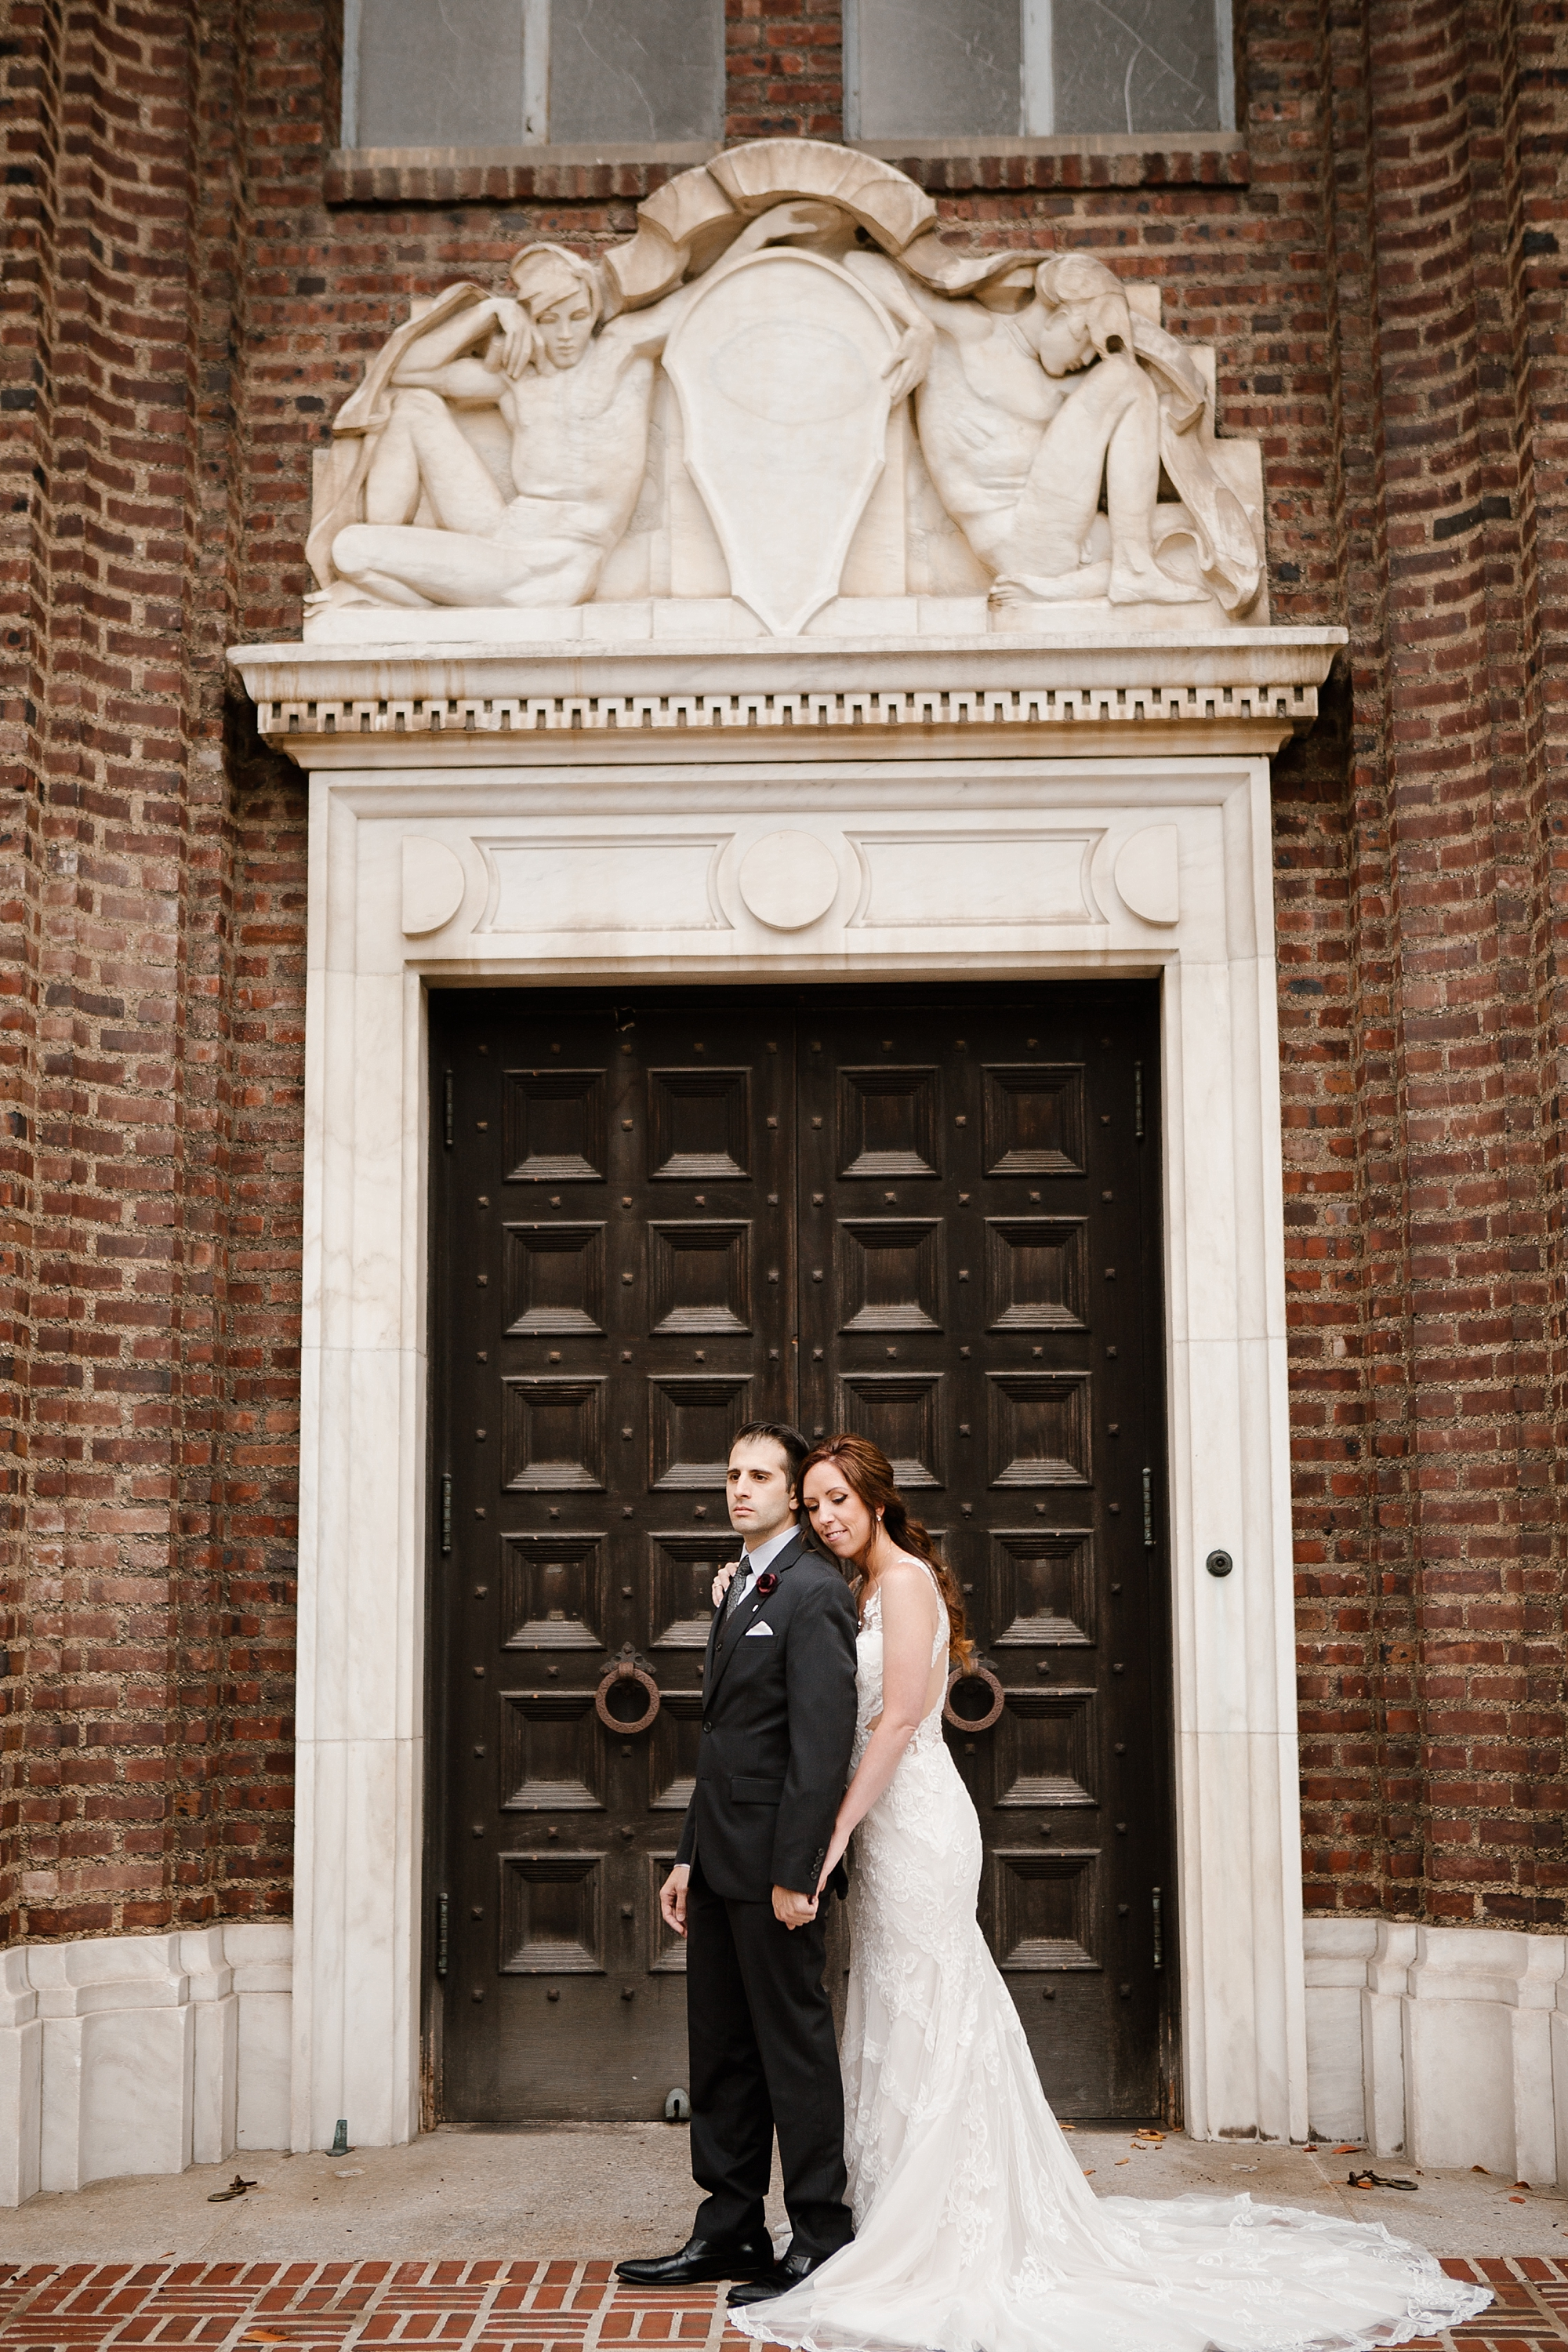 01_Love_by_Joe_Mac_Best_Wedding_Photography_Philadelphia_Penn_Museum_Univerity__0031.jpg